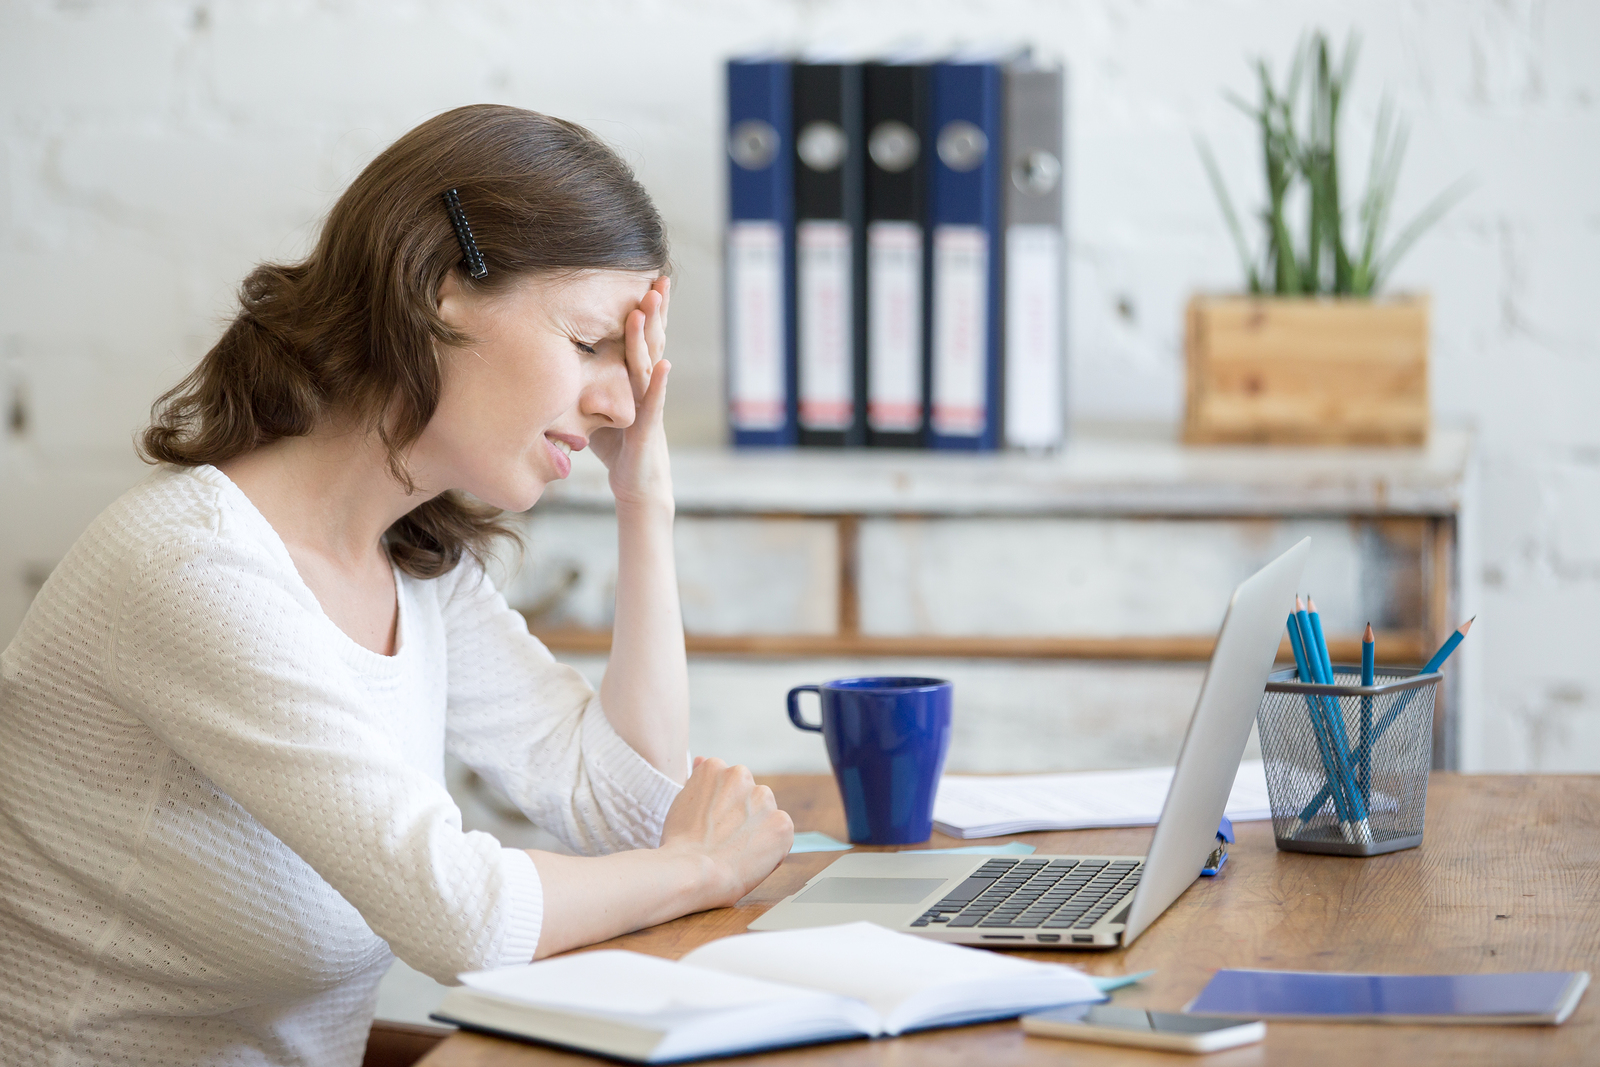 Young stressed businesswoman sitting in front of laptop and touching head with pained expression. Business person feeling pain suffering from migraine after working on pc overworked or depressed